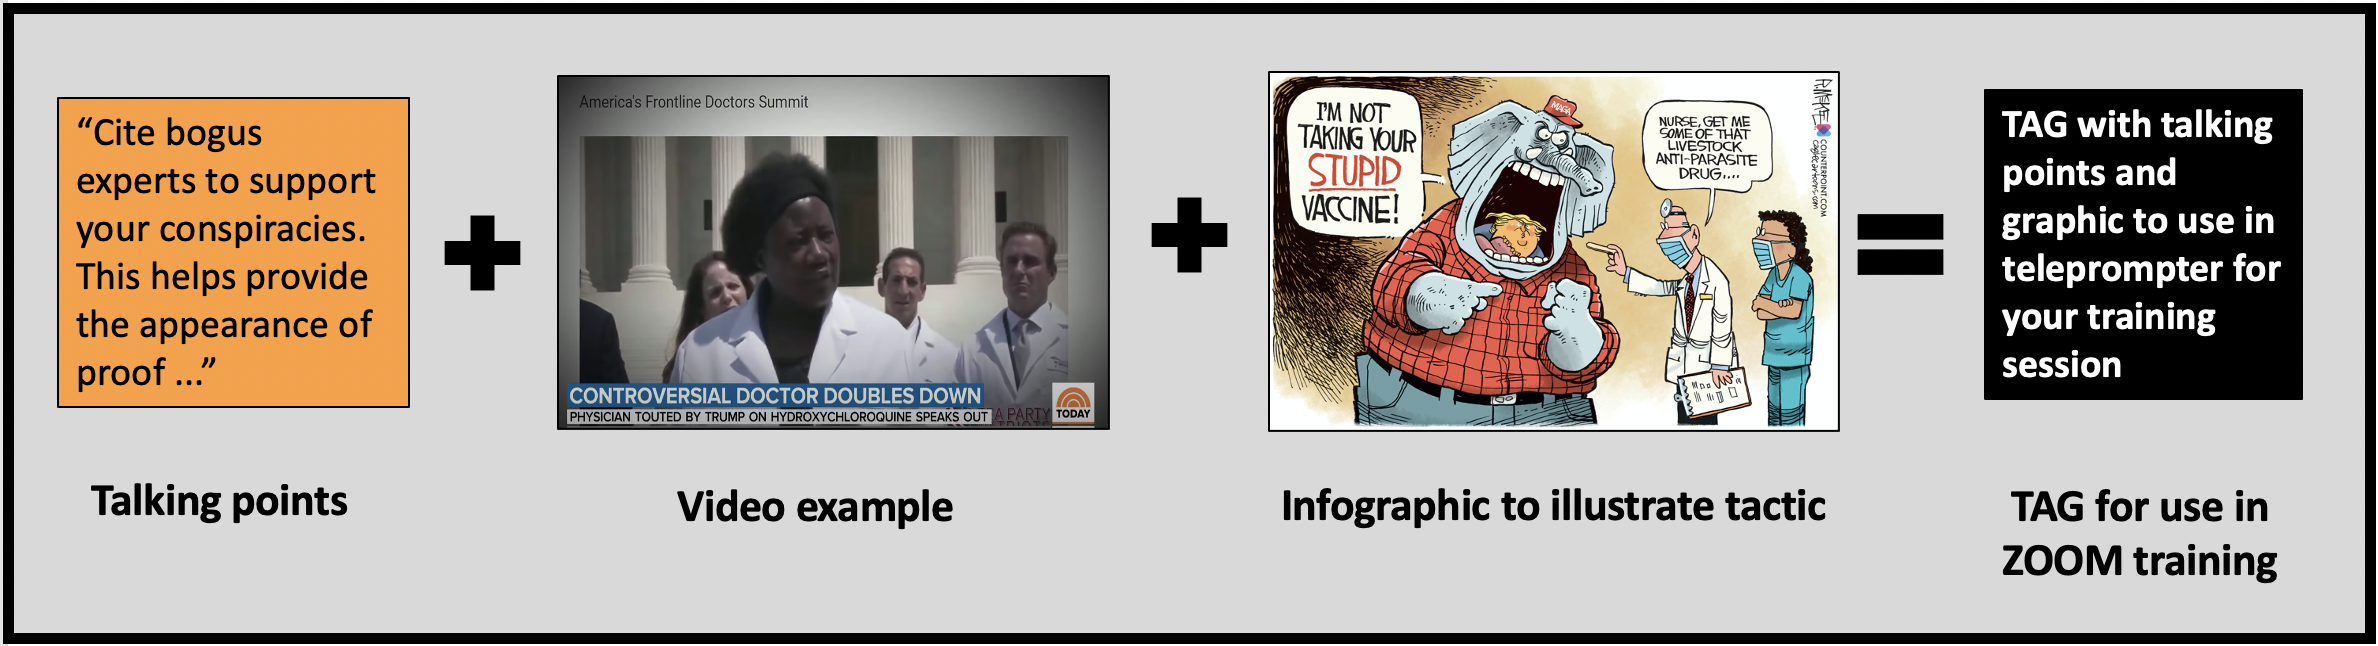 Create multimedia content with talking points, videos and graphics to teach better on Zoom